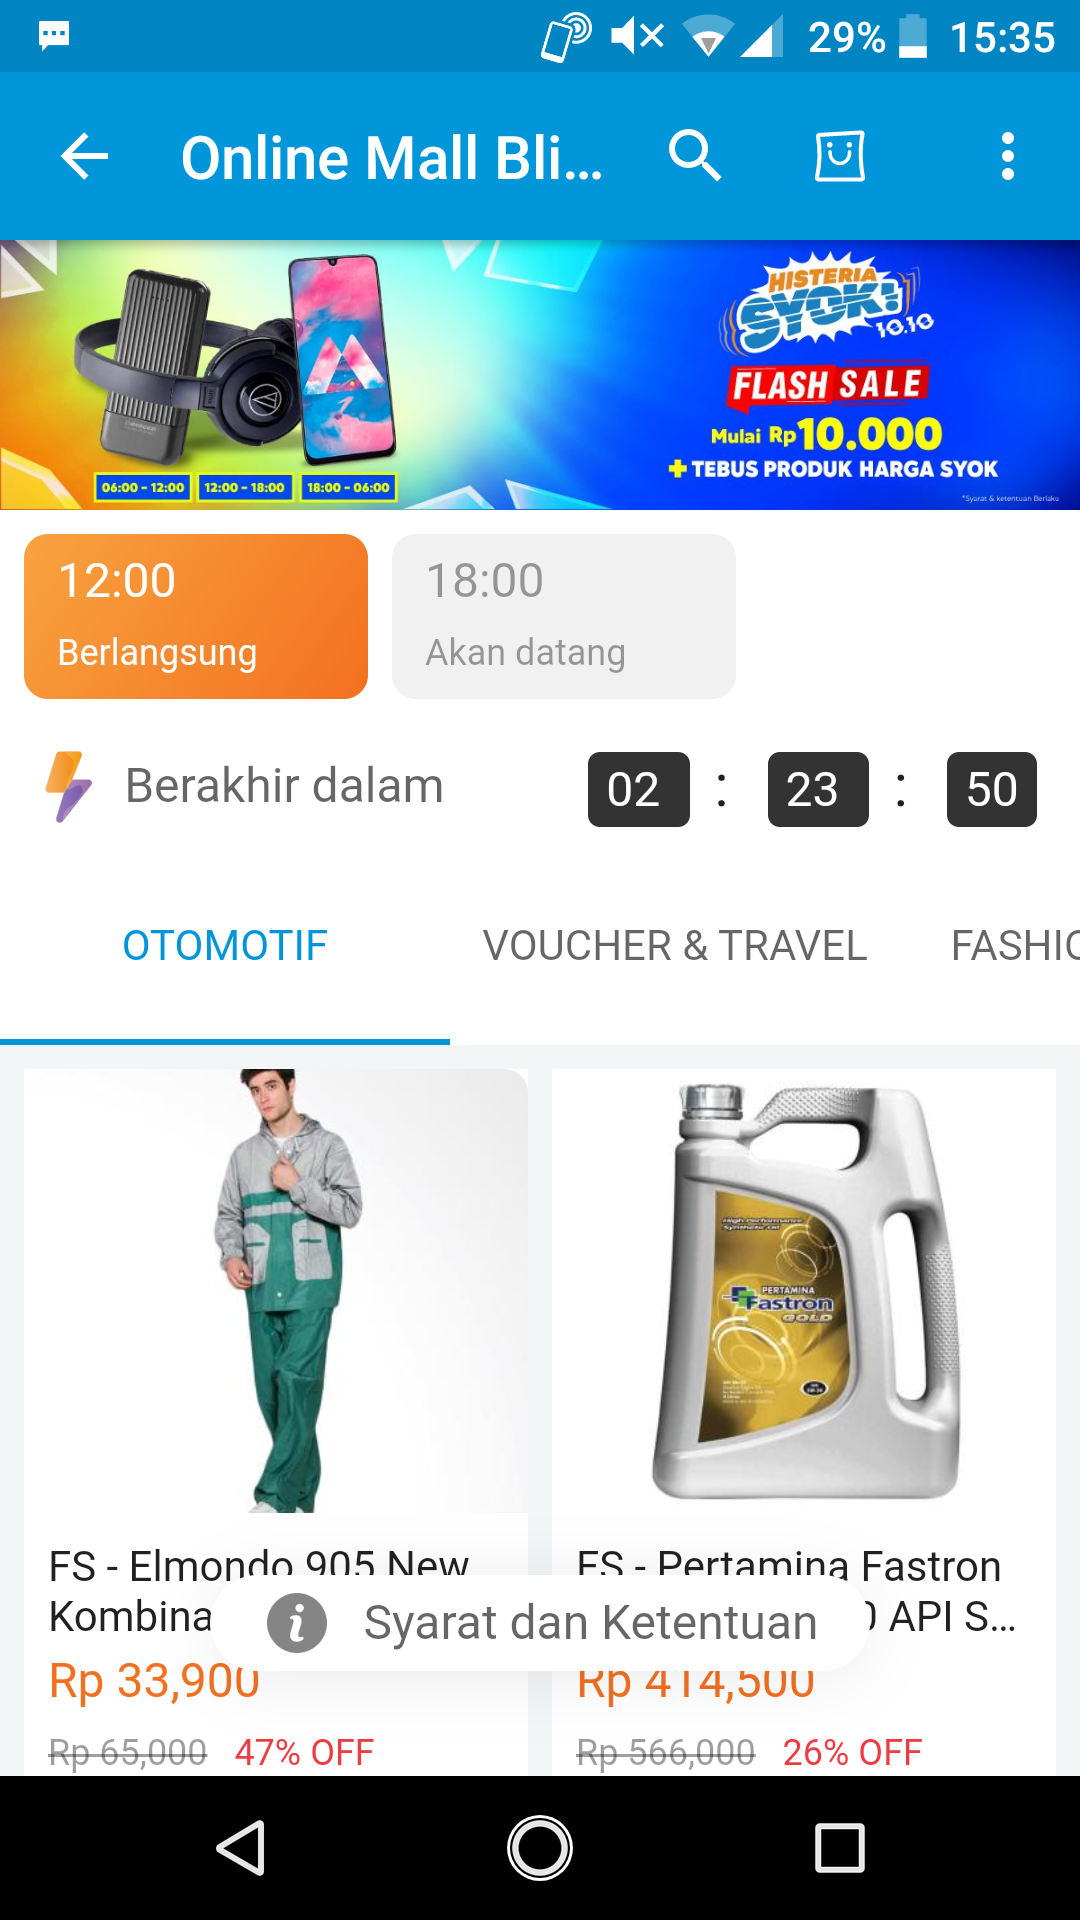 Flash Sale 24 Jam Nonstop di Event Harbolnasnya Blibli.com